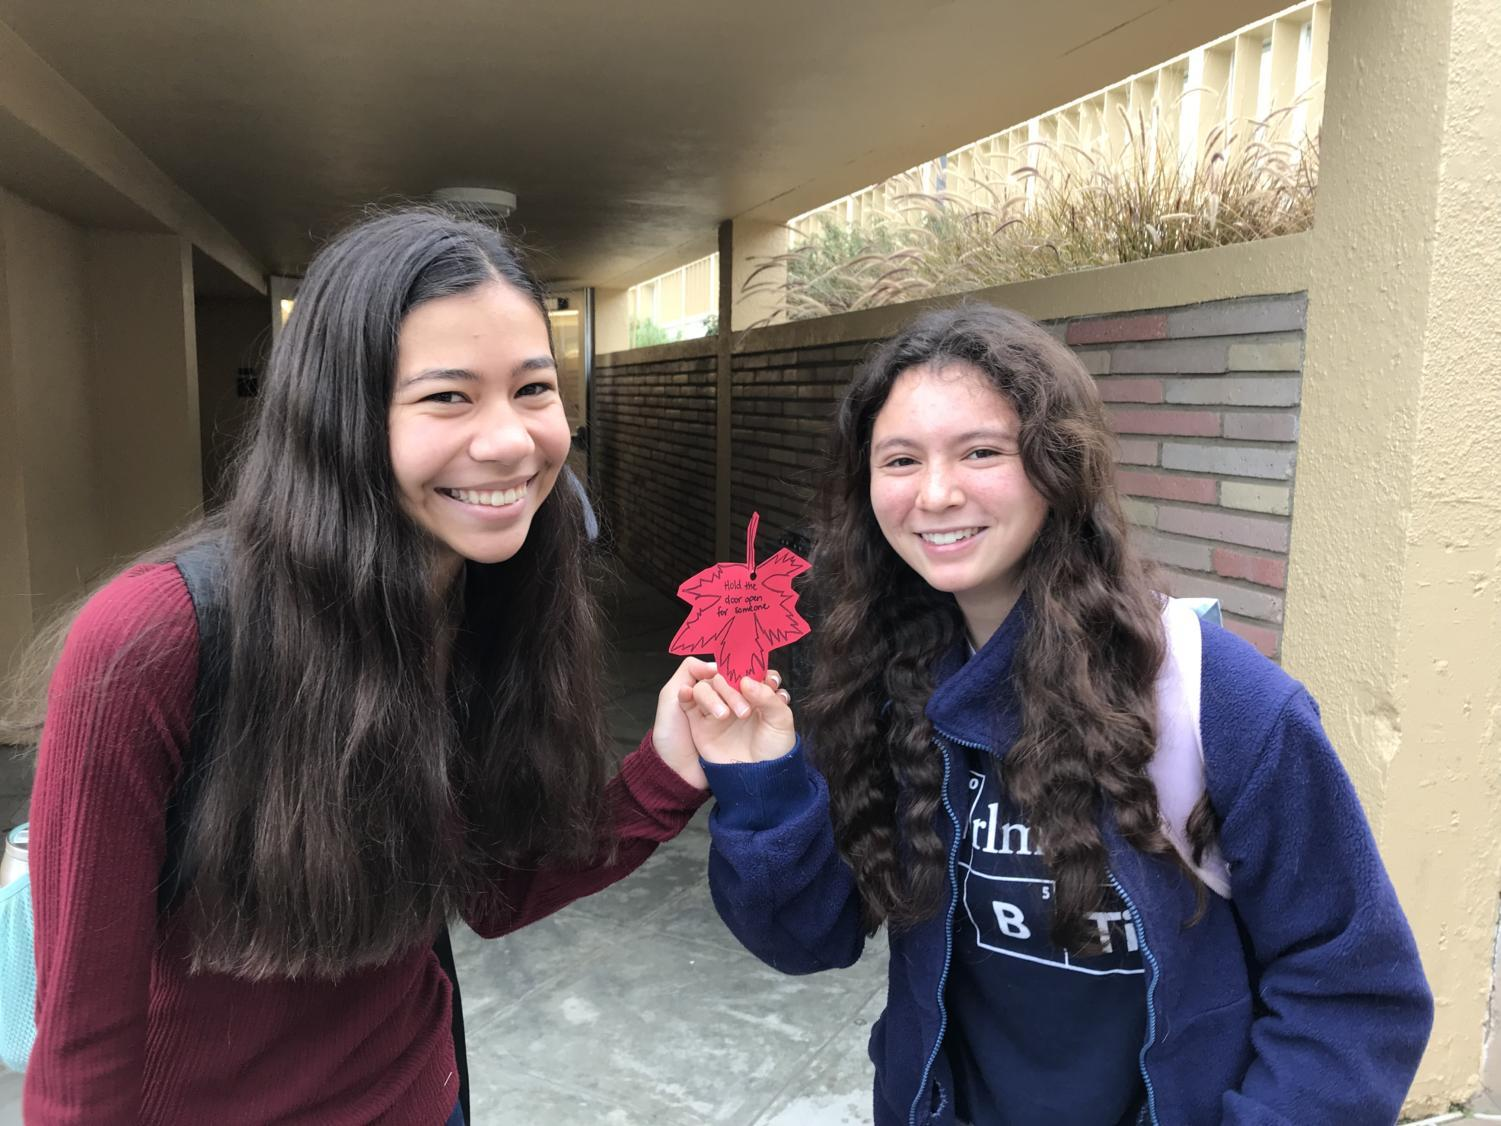 Kayleigh+Bhatt+and+Alyssa+Higdon%2C+both+juniors%2C+participate+in+the+event+by+taking+a+leaf+from+a+nearby+staircase.